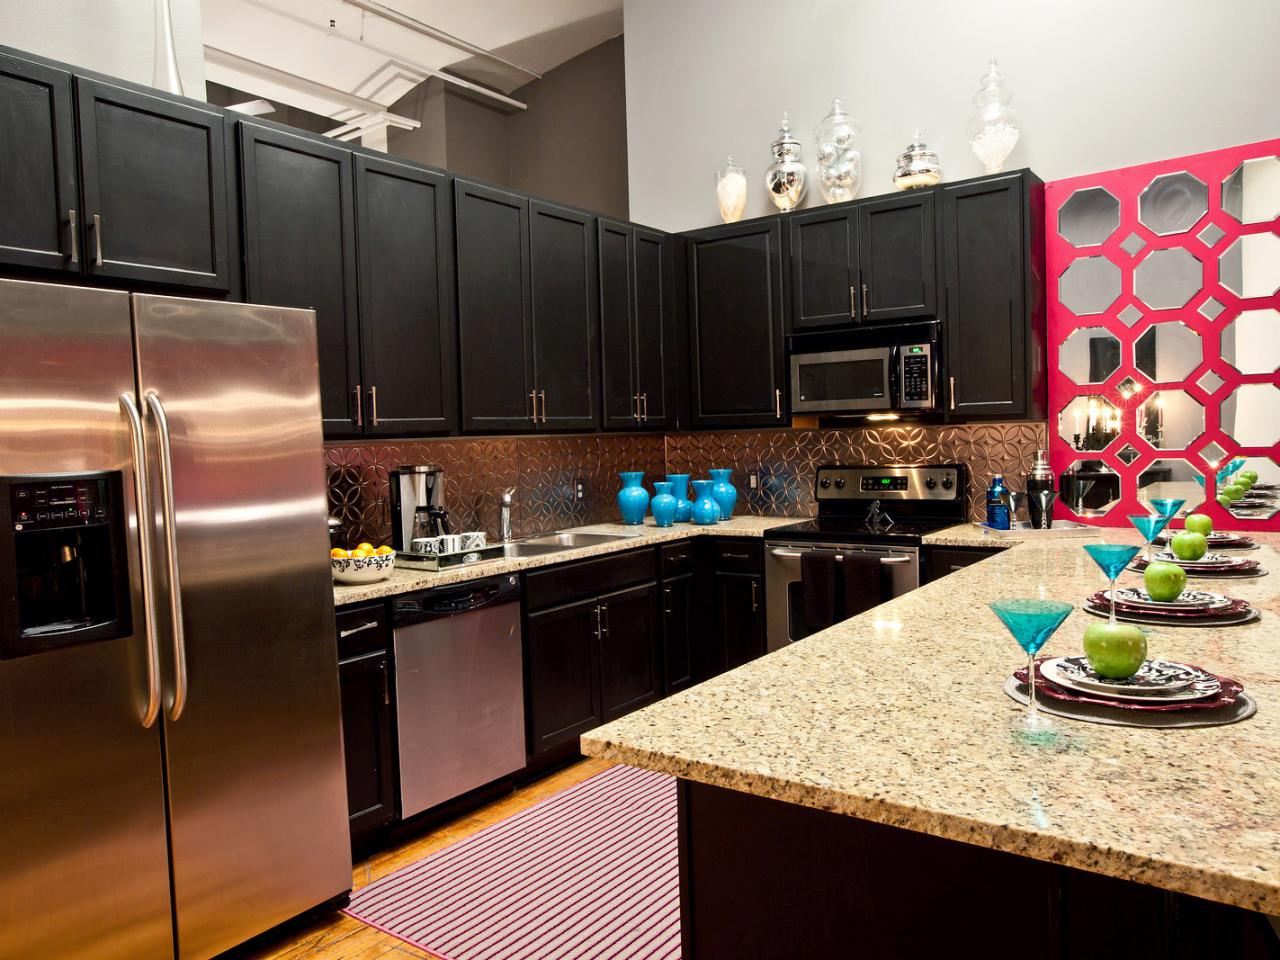 6 Decorating Ideas for Above Kitchen Cabinets - Reliable ...